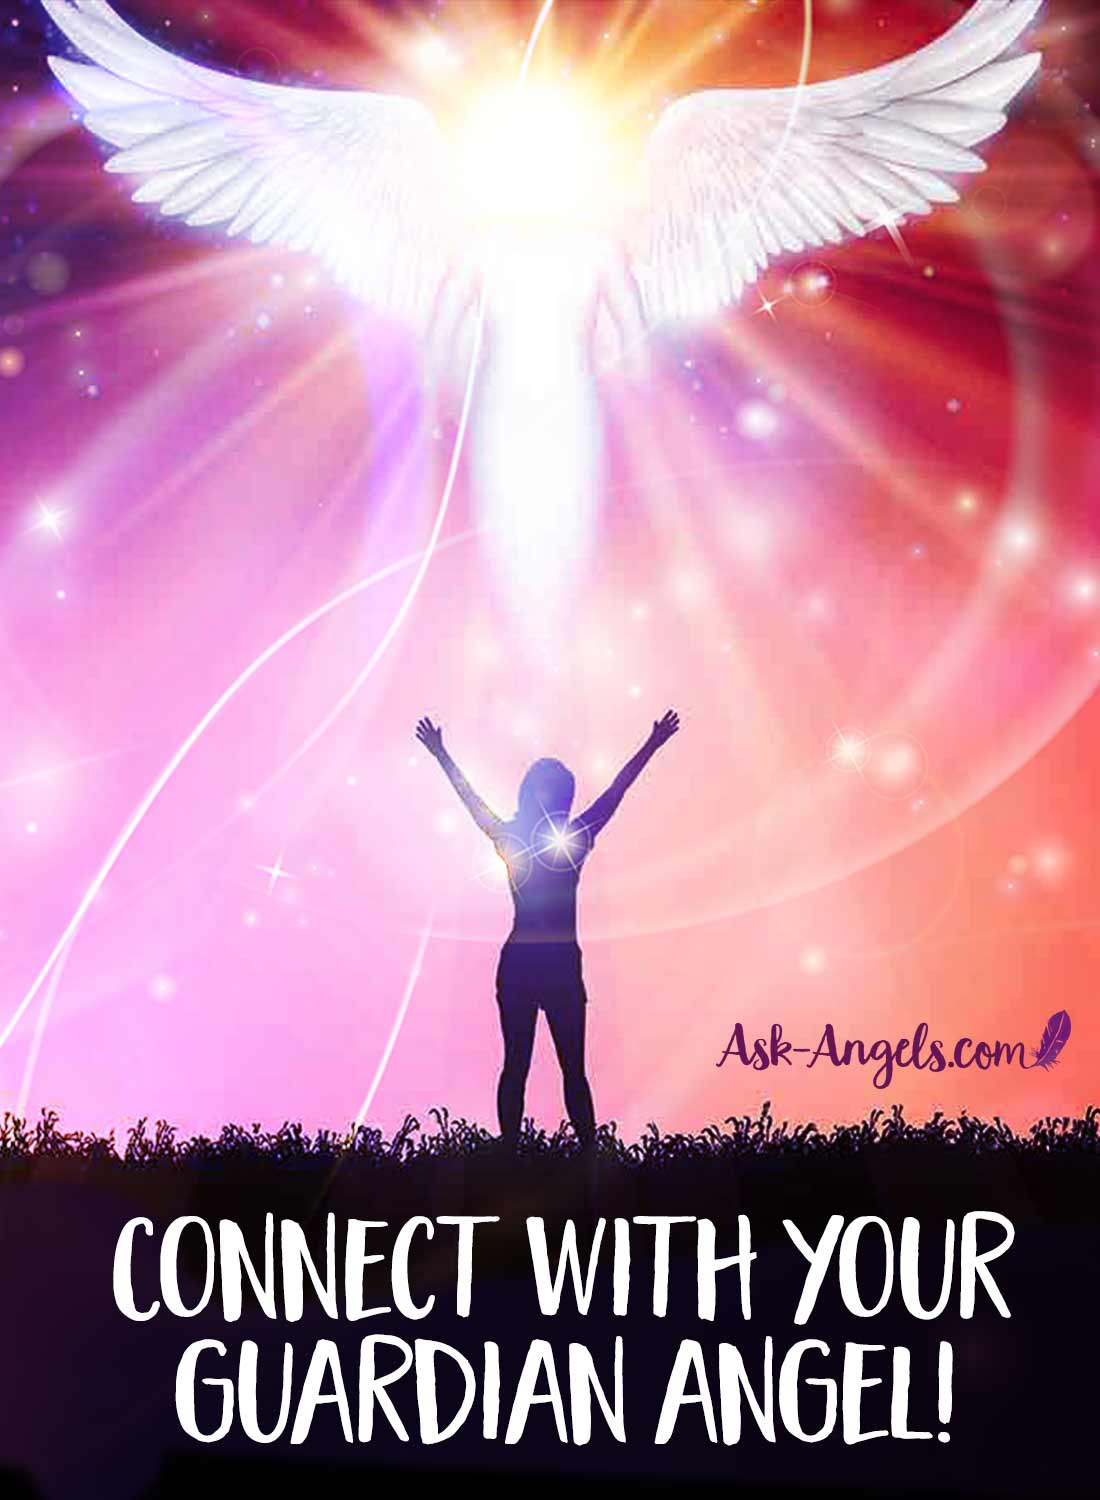 You can connect with your guardian angel! Learn how here!